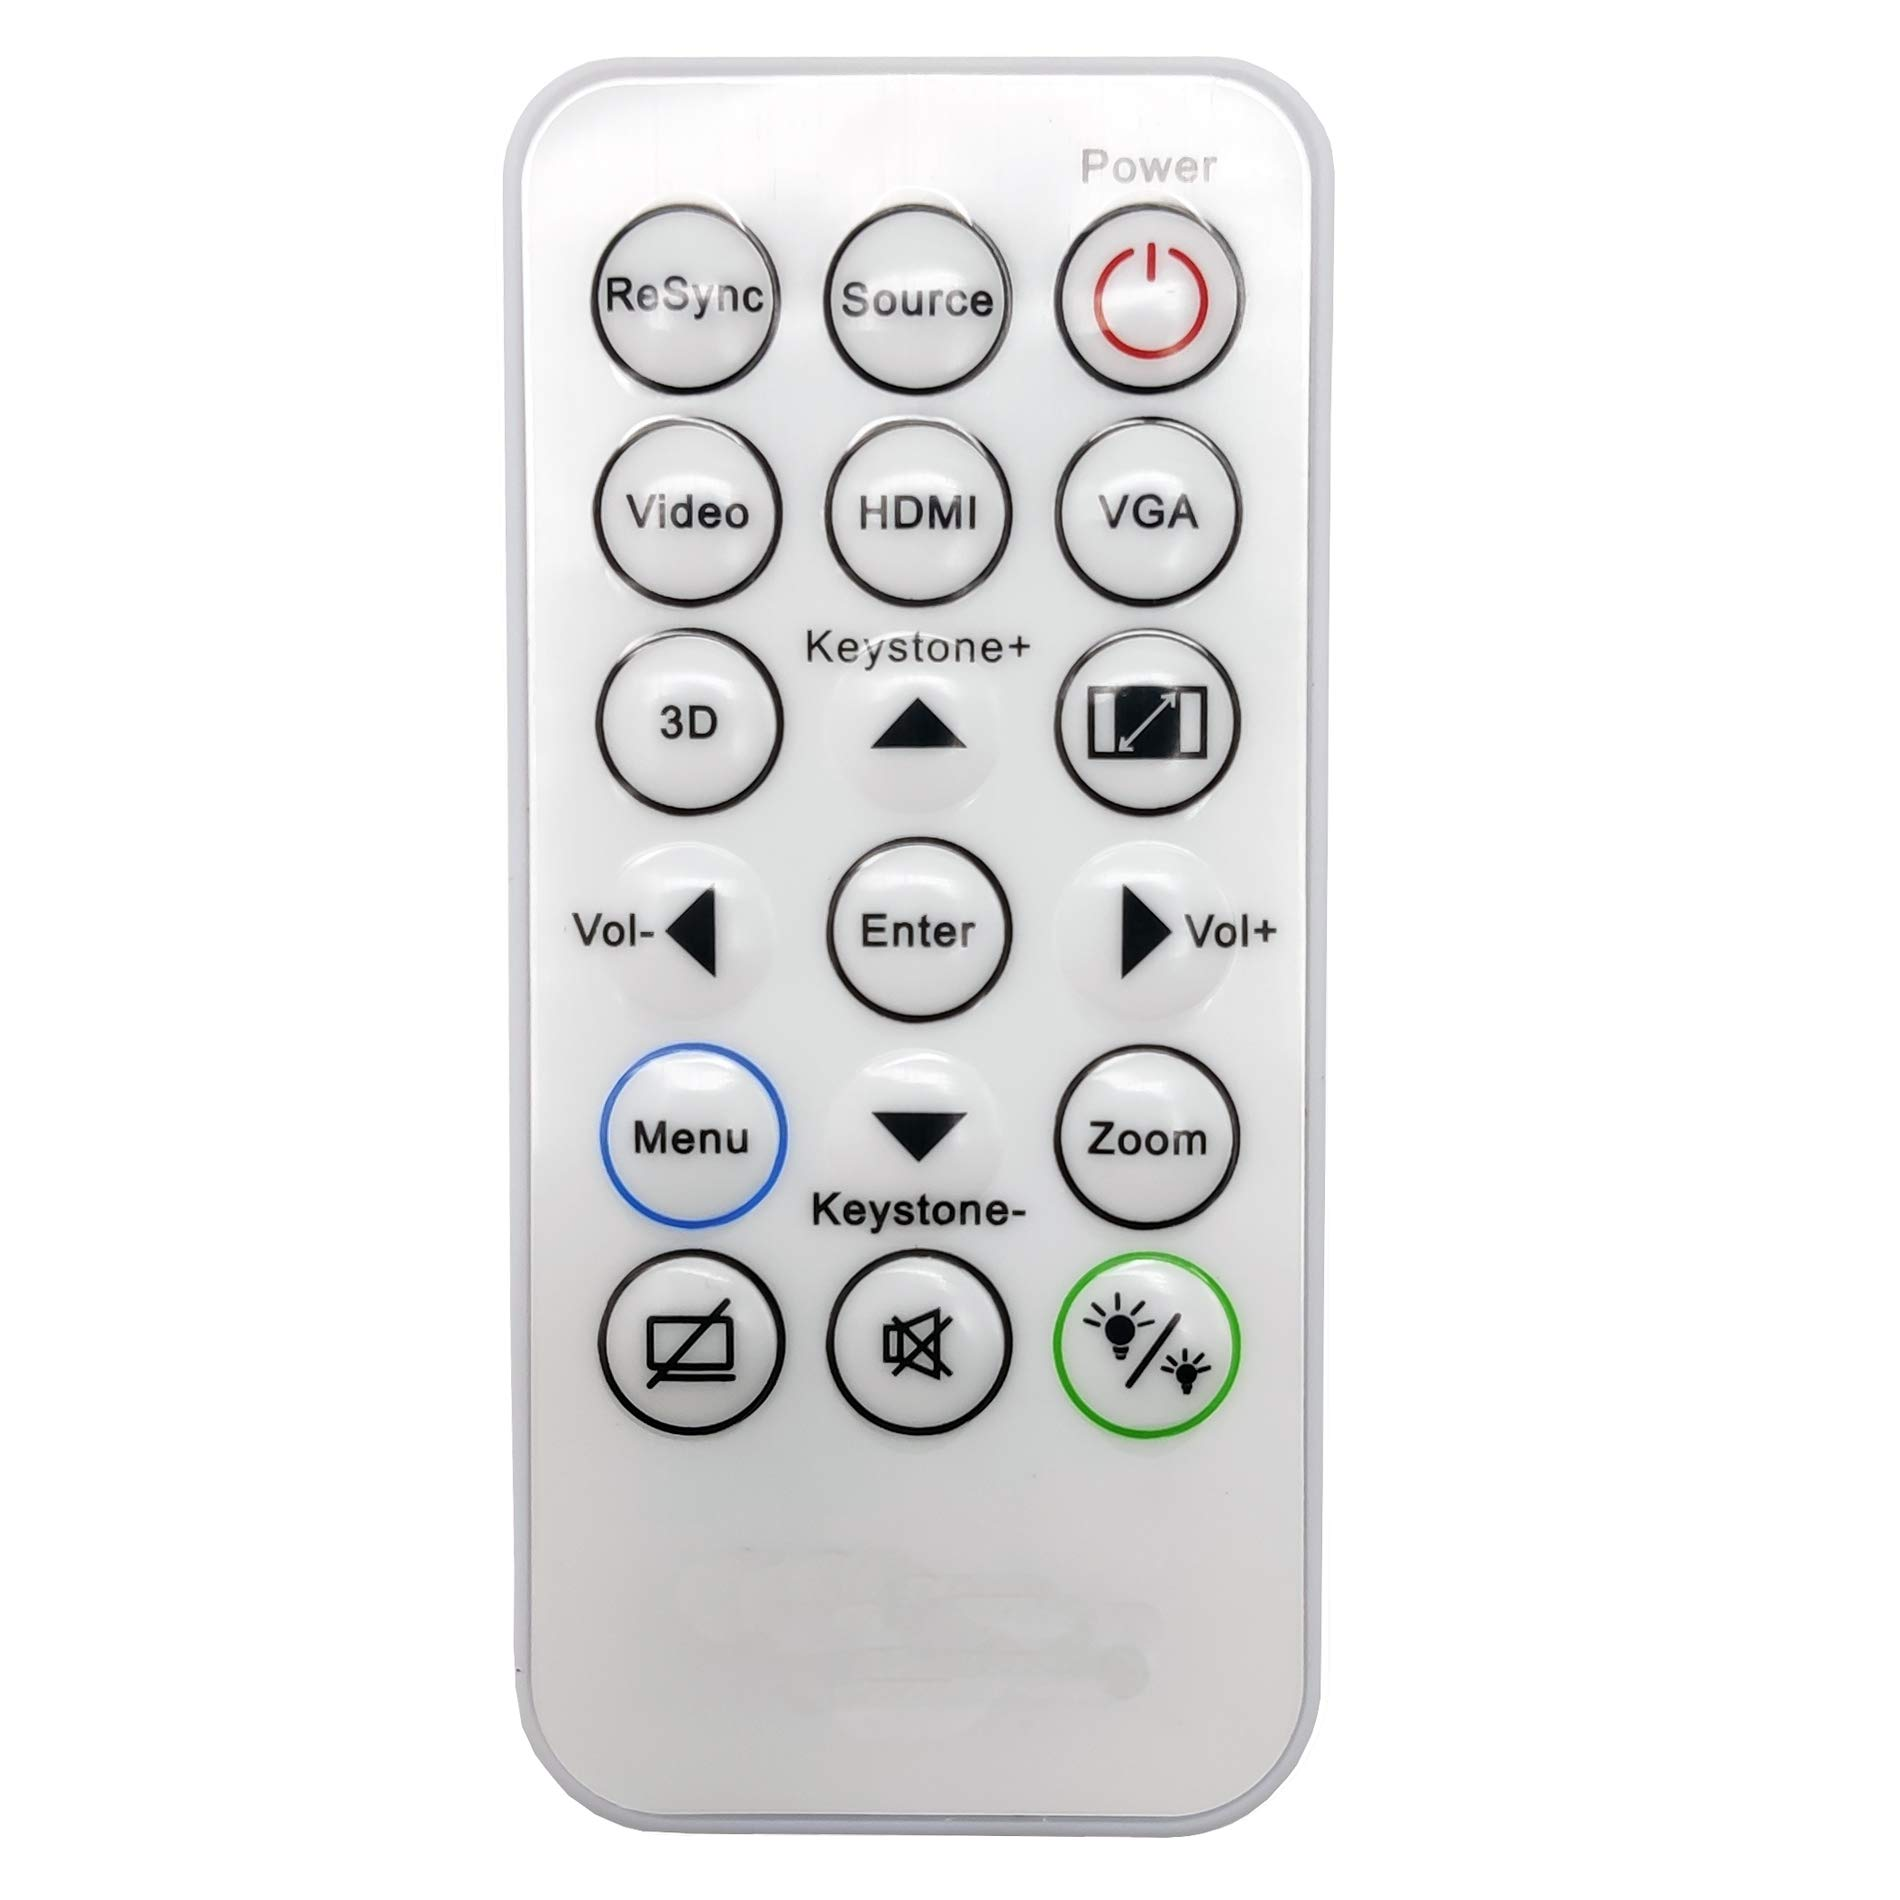 InTeching IR29033 Projector Remote Control for InFocus INA-REMPJ001, IN110v, IN110xa, IN110xv Series IN112v, IN114v, IN116v, IN112xa, IN114xa, IN116xa, IN112xv, IN114xv, IN116xv by INTECHING